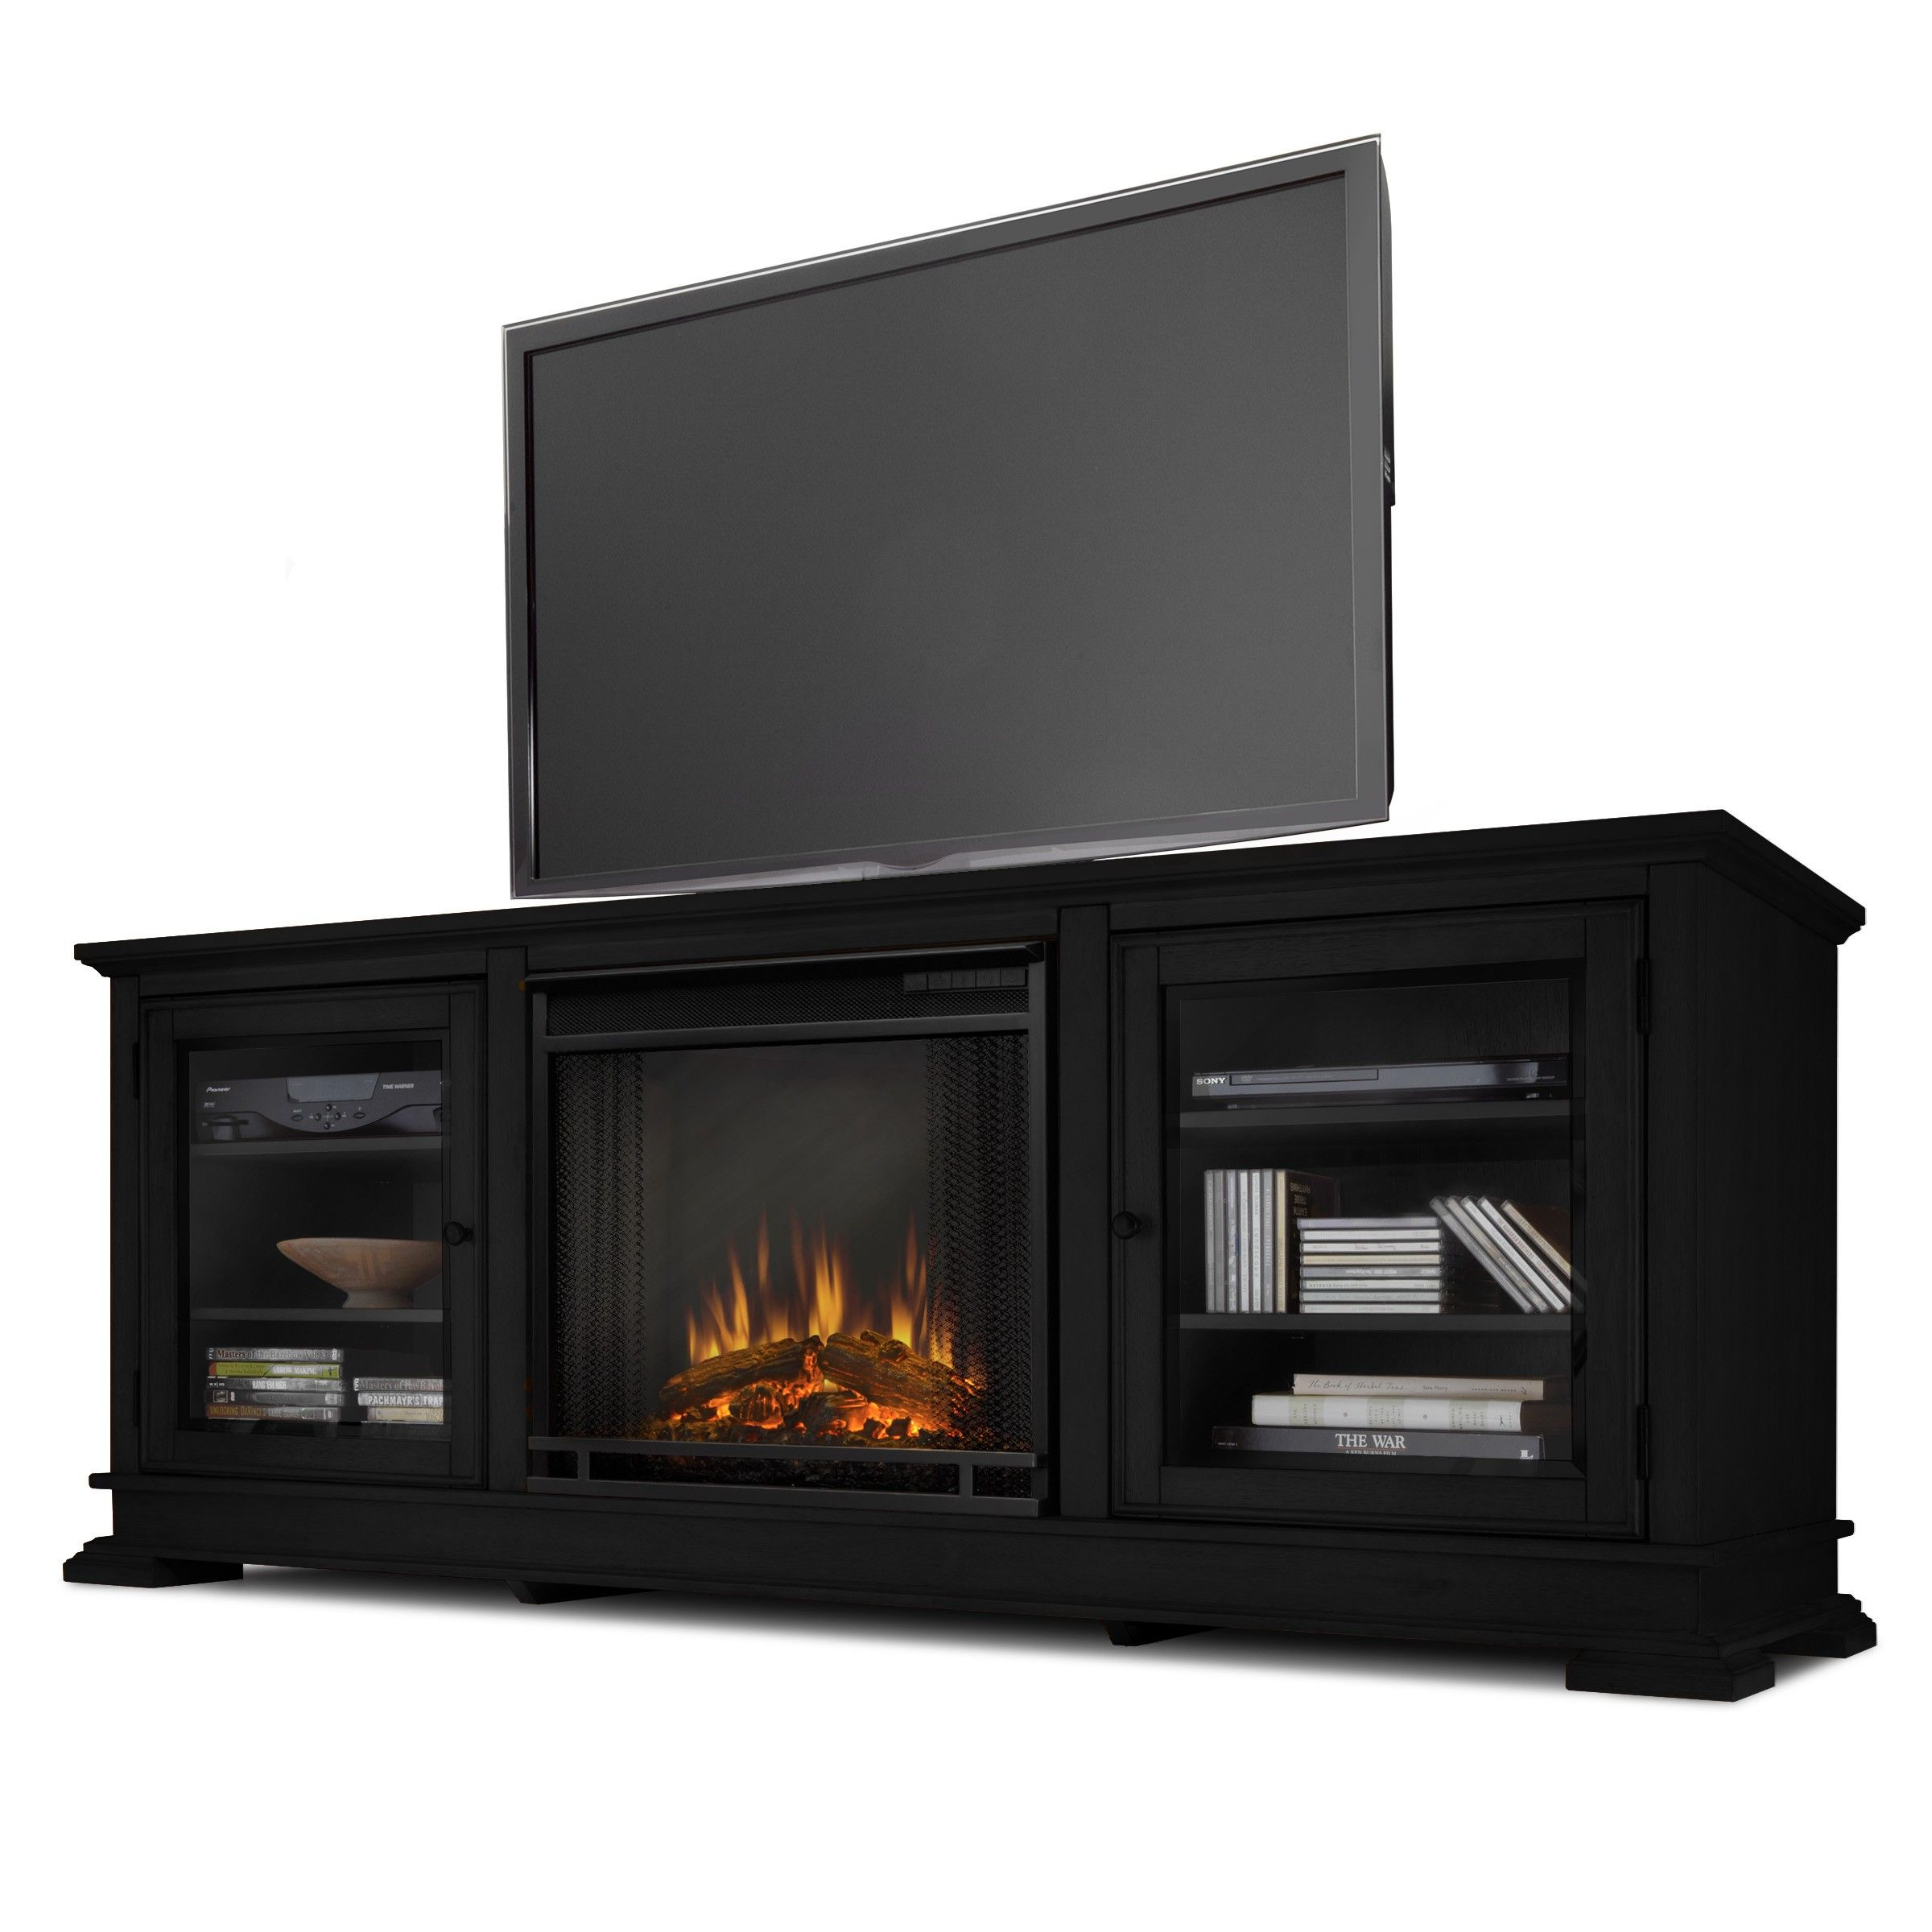 low media fireplace real center electric freestanding console this substantial flame with pin